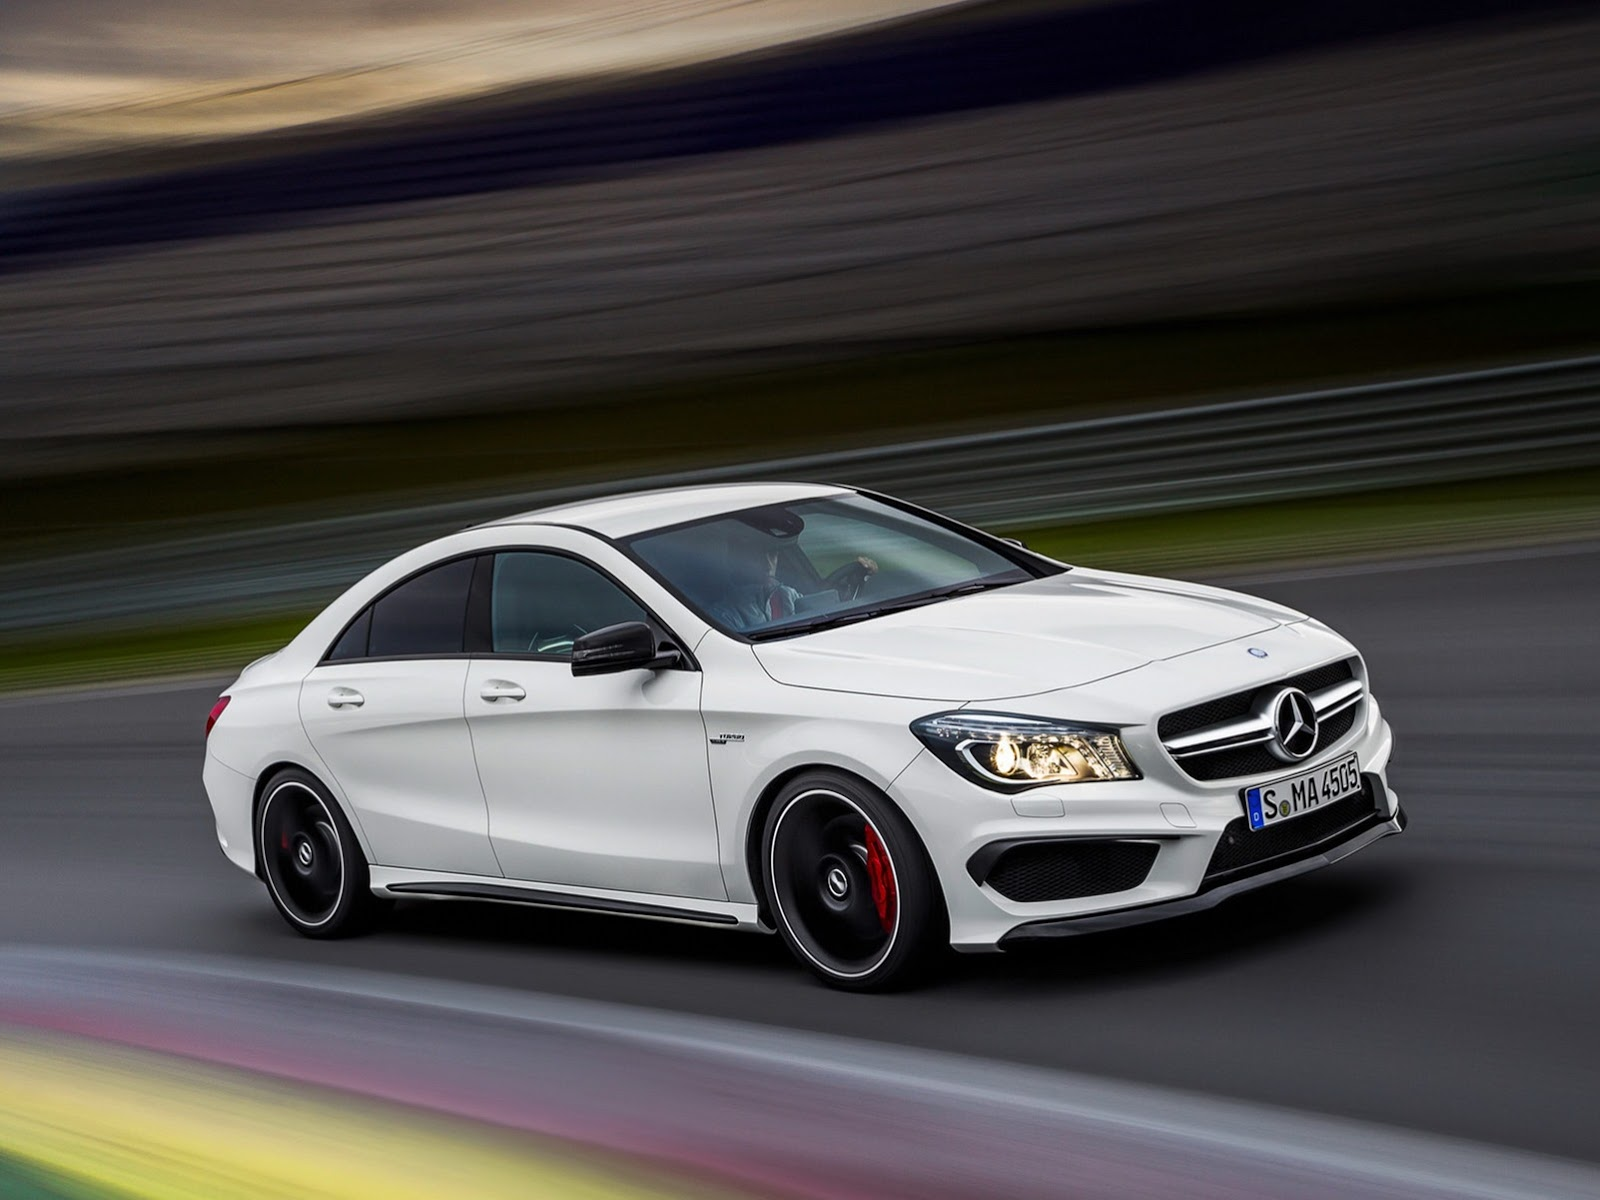 2014 mercedes cla 45 amg first photos leaked autoevolution for Mercedes benz news